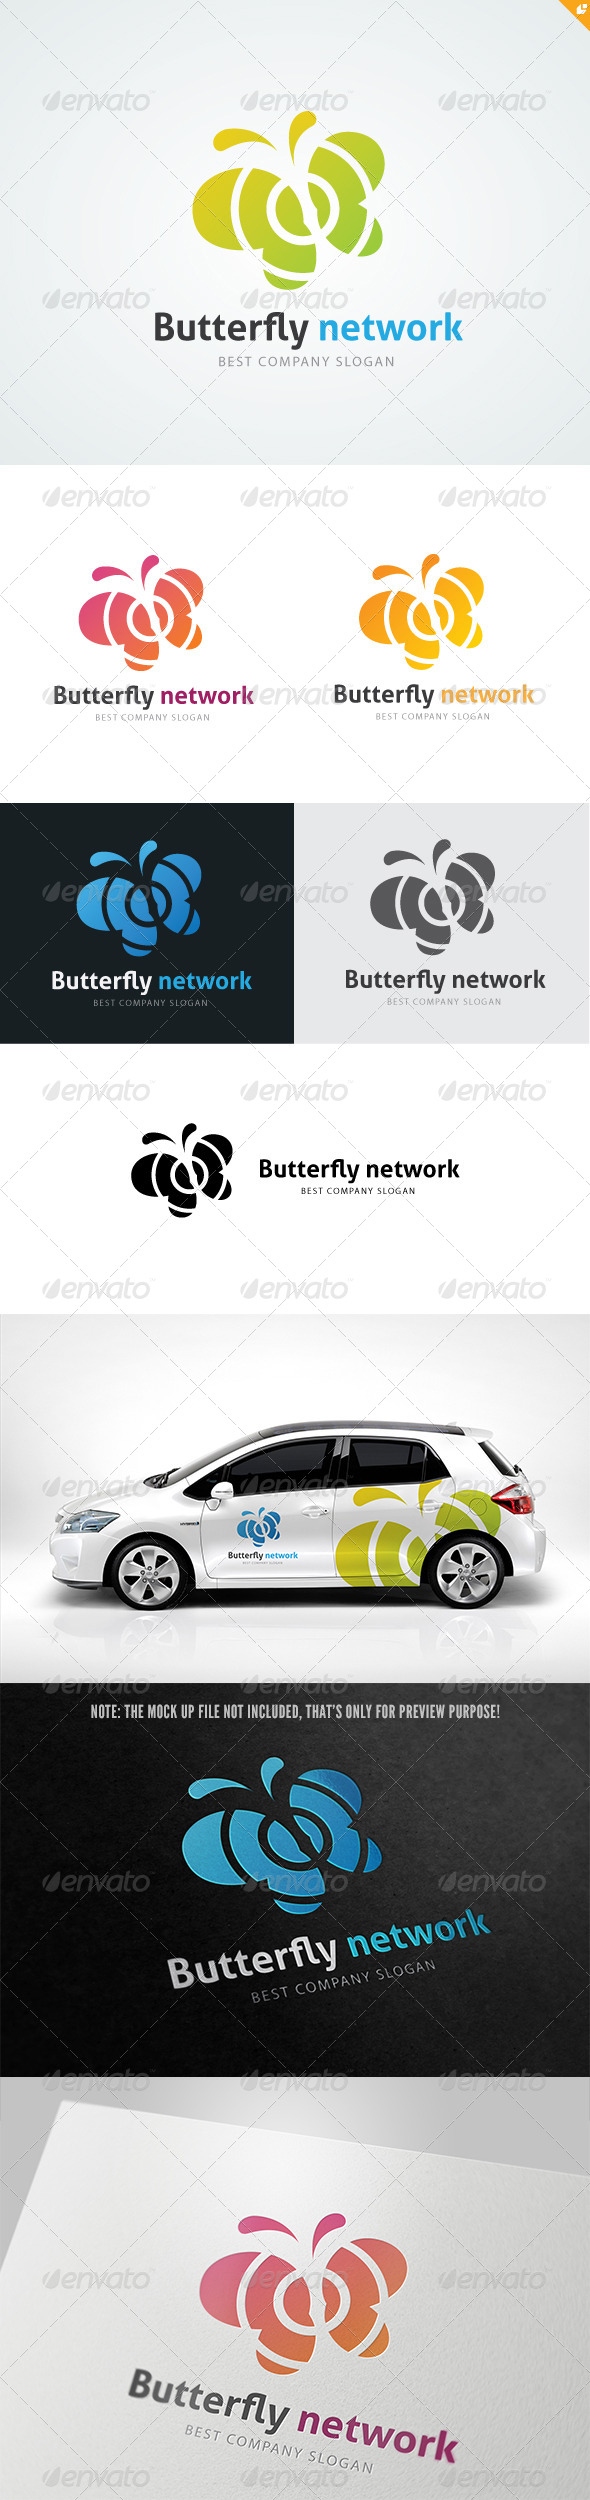 Butterfly Network Logo - Animals Logo Templates